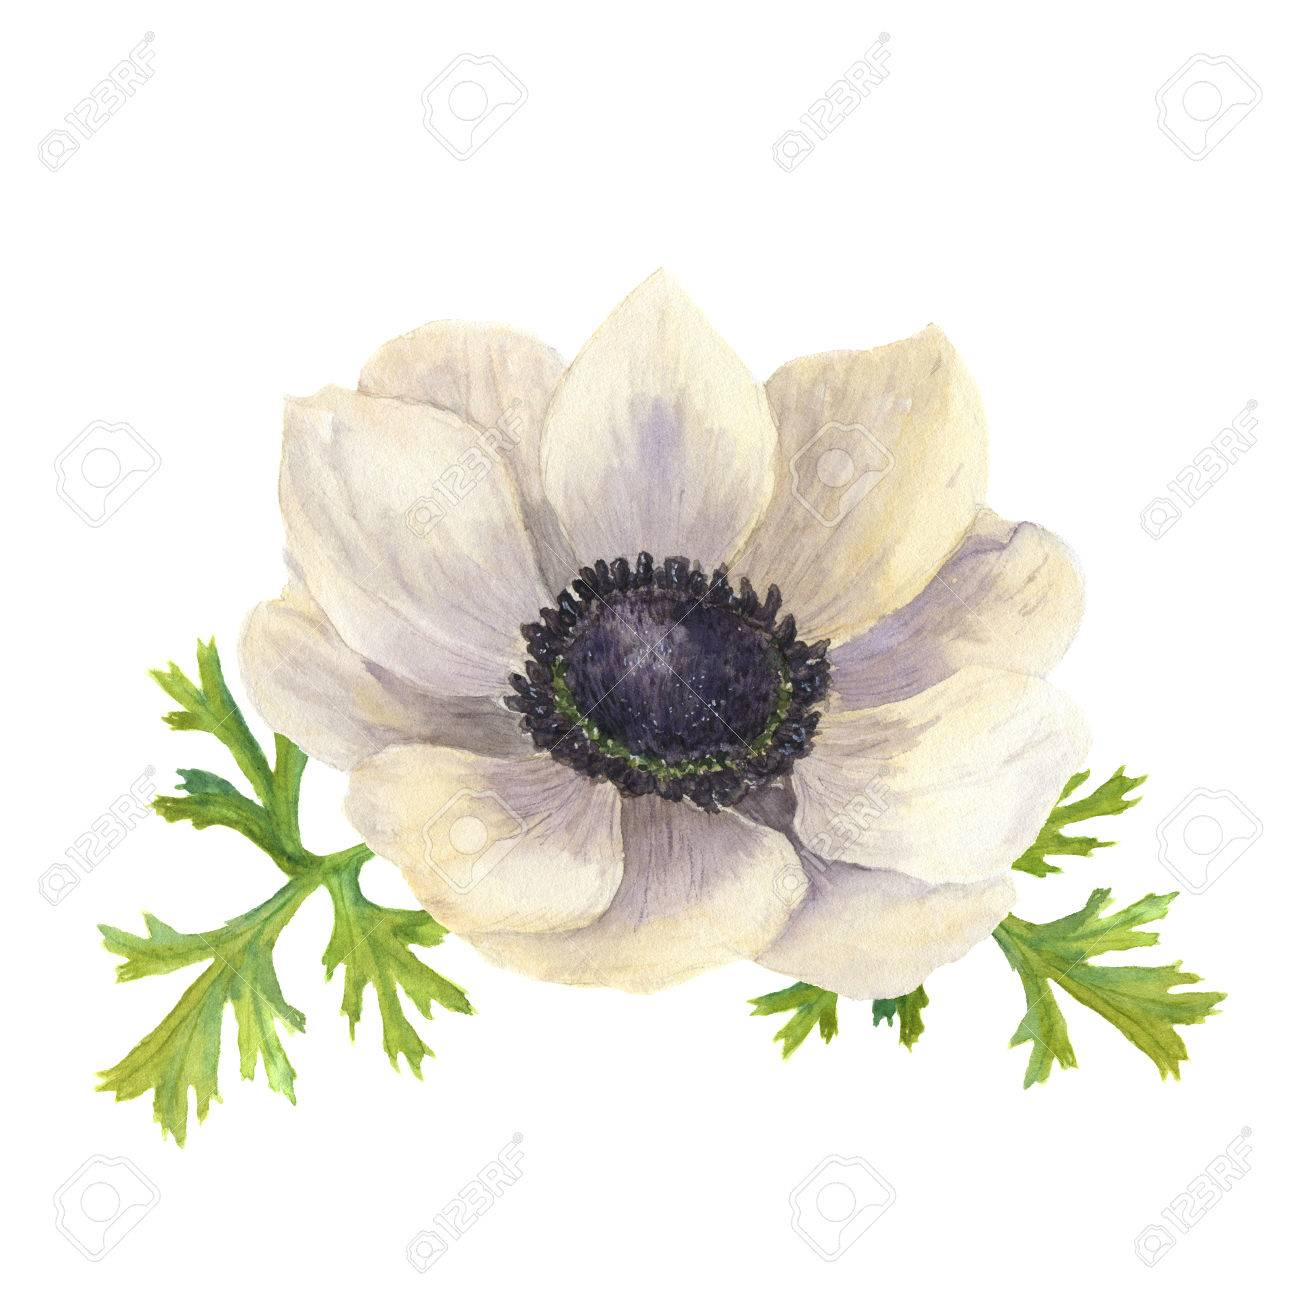 Watercolor Anemone Flower With Leaveshand Drawn Floral Illustration